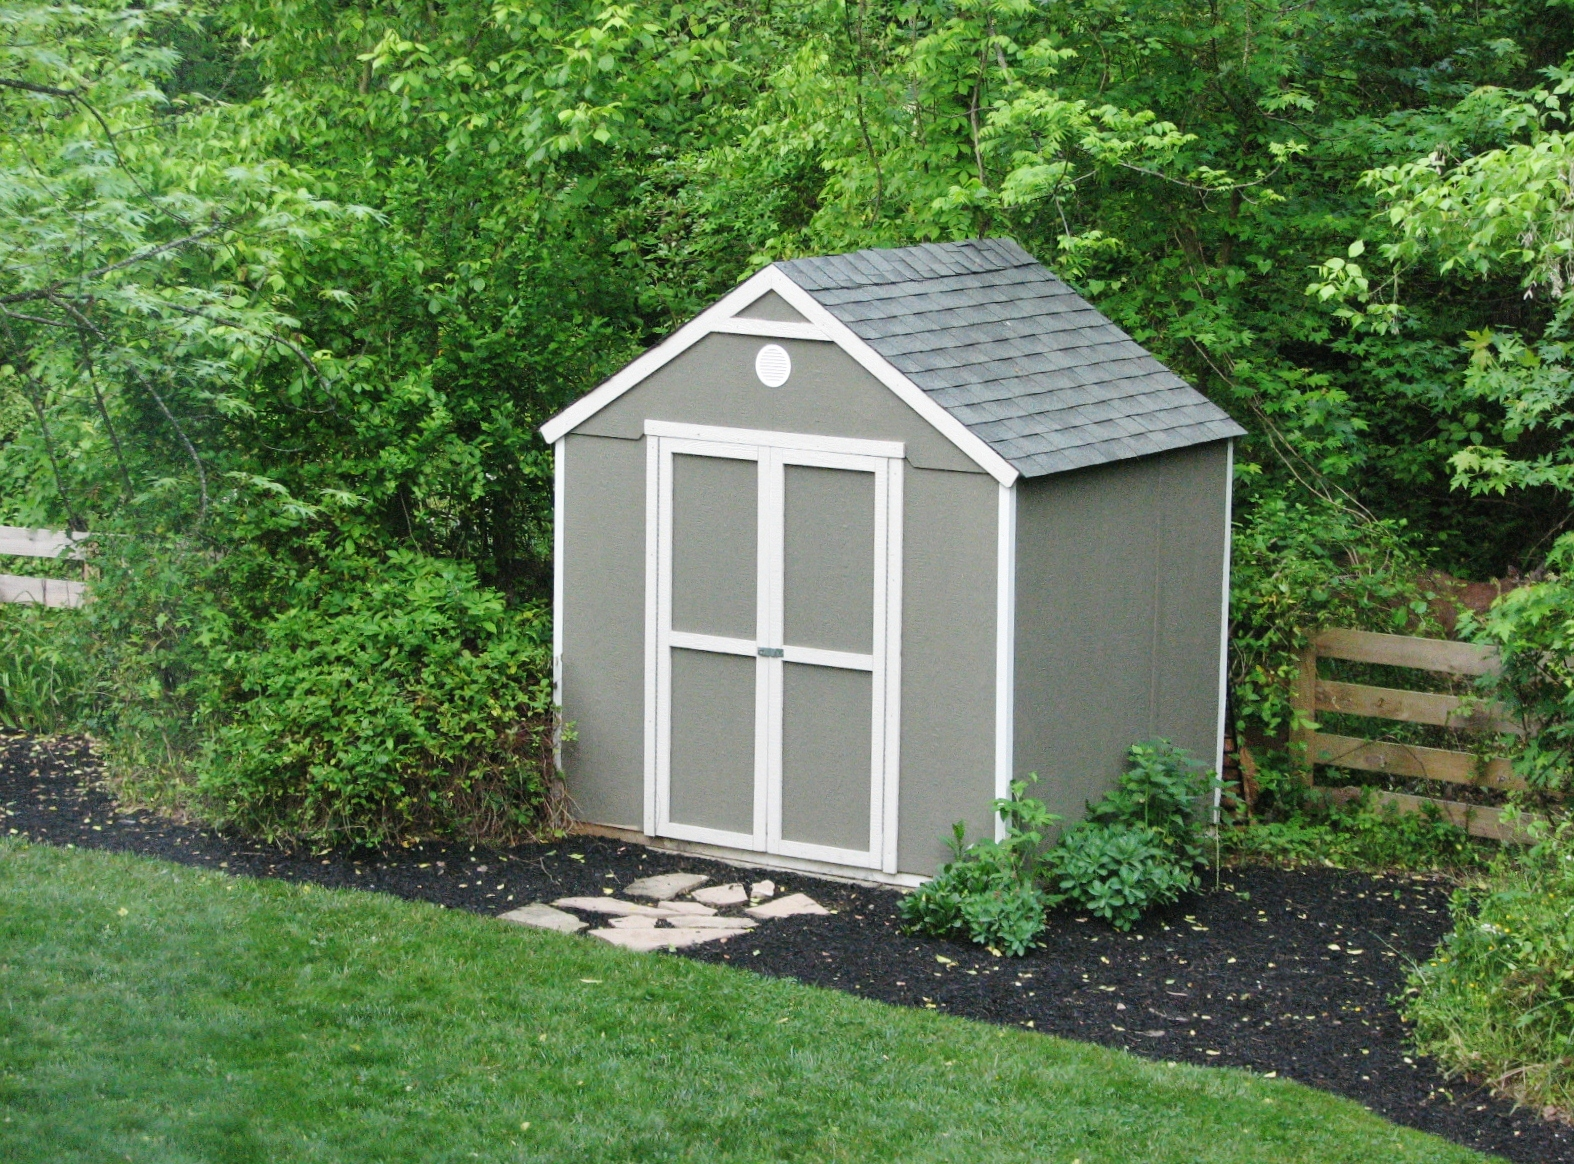 Pure Style Home: Little Houses & The RTMC Playhouse Project on Backyard Landscaping Near Me id=29014